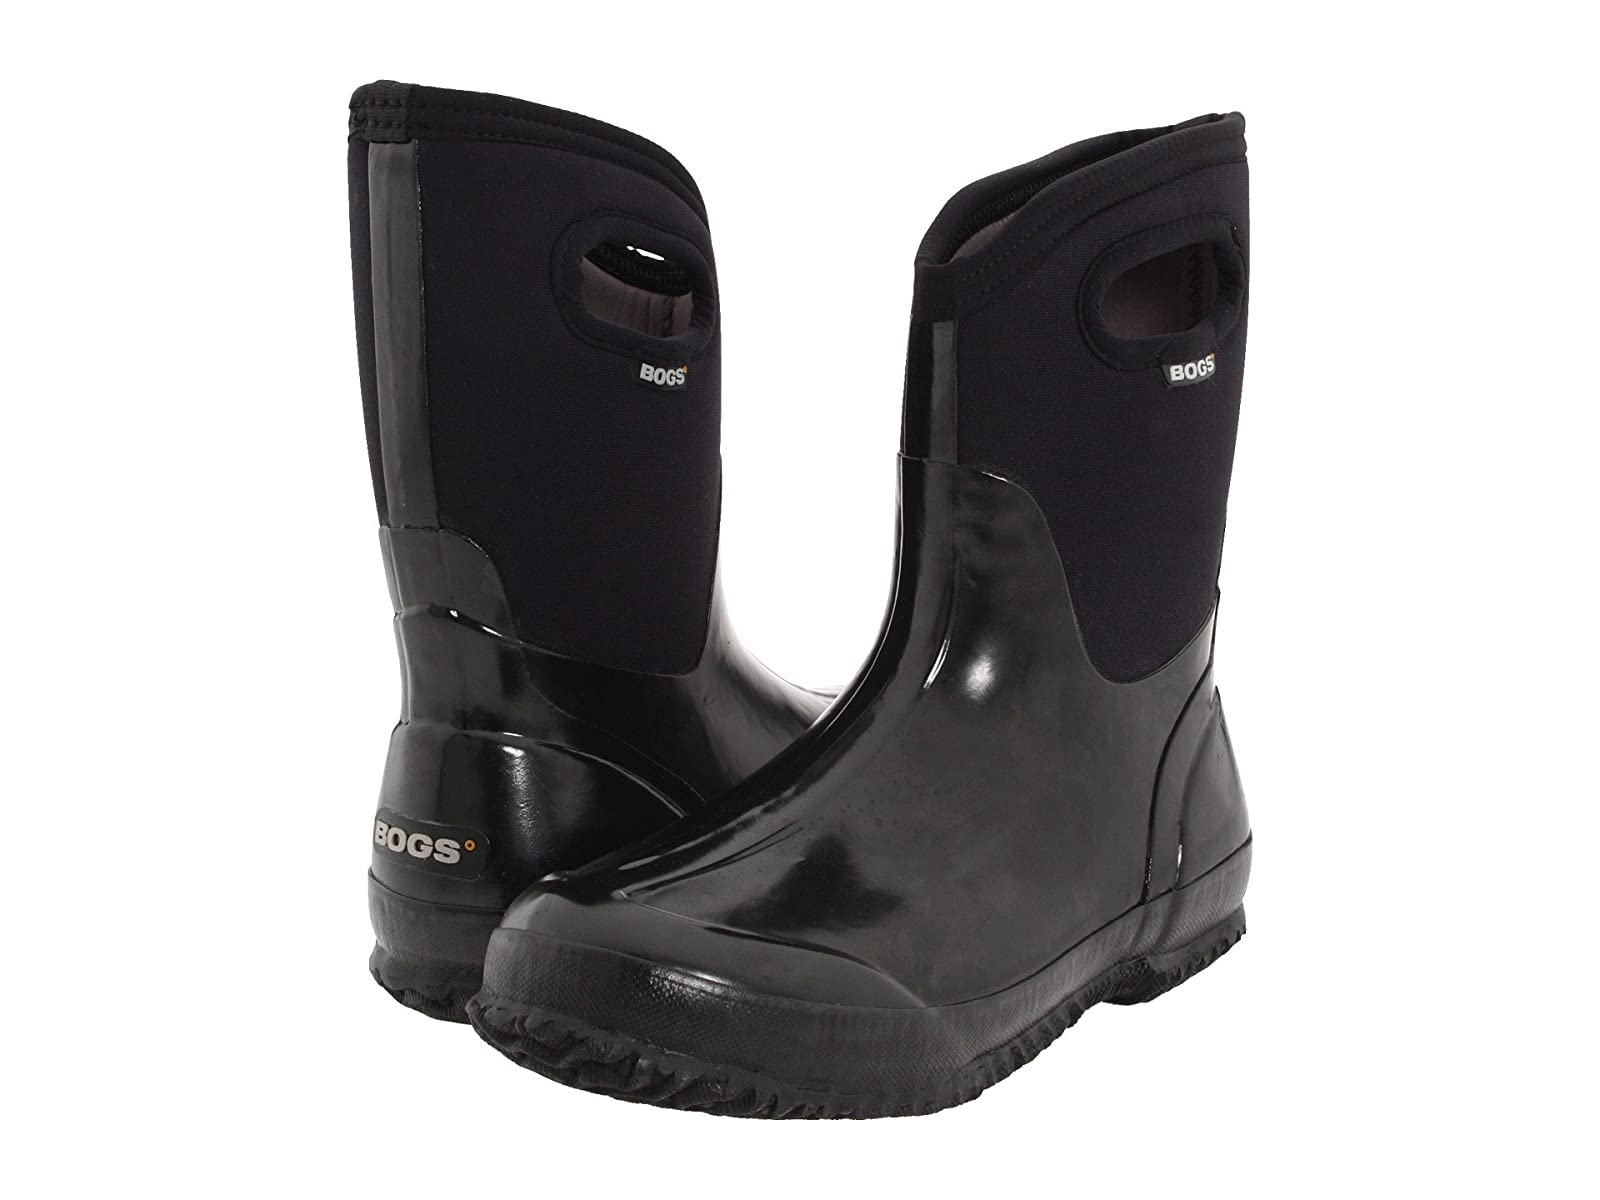 Bogs Classic Mid HandleSelling fashionable and eye-catching shoes